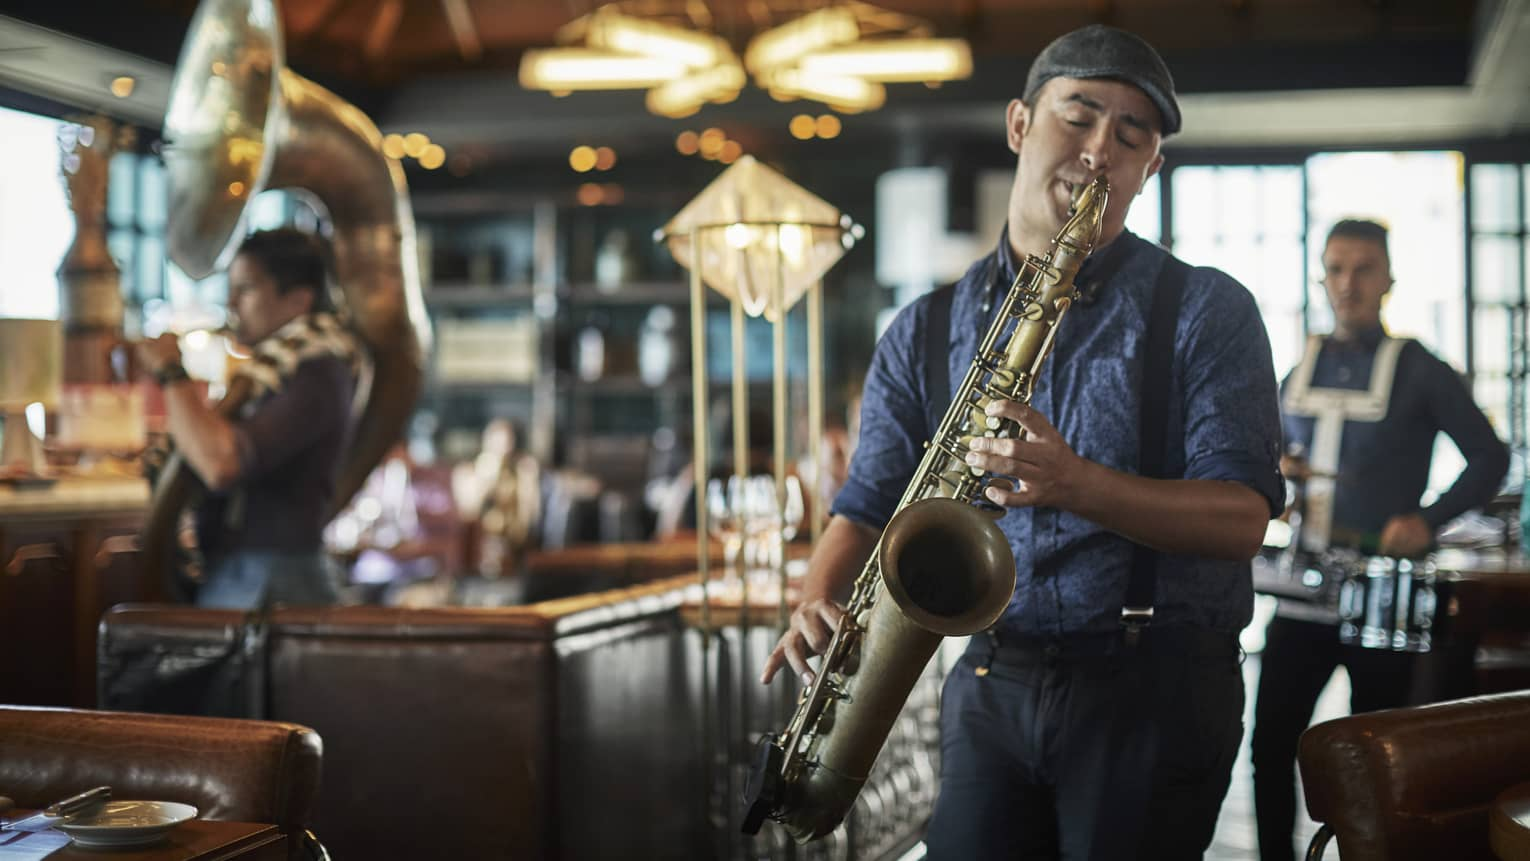 A live jazz band member plays the saxophone at Butcher & Still